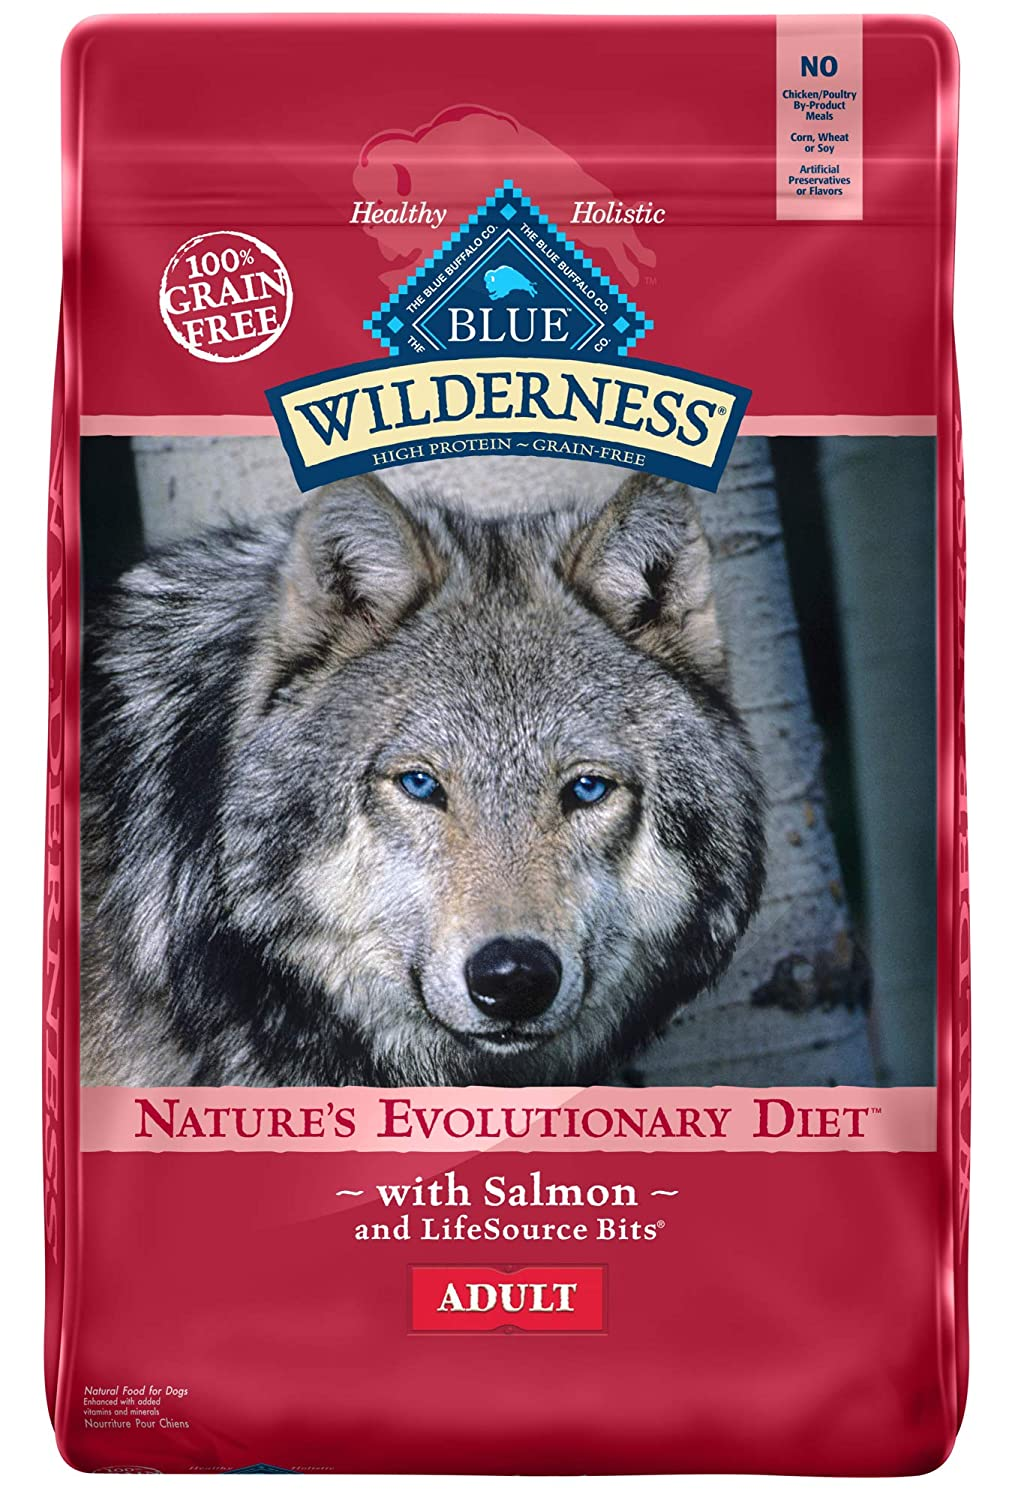 5.Blue Buffalo Wilderness Salmon Recipe Grain-Free Dry Dog Food